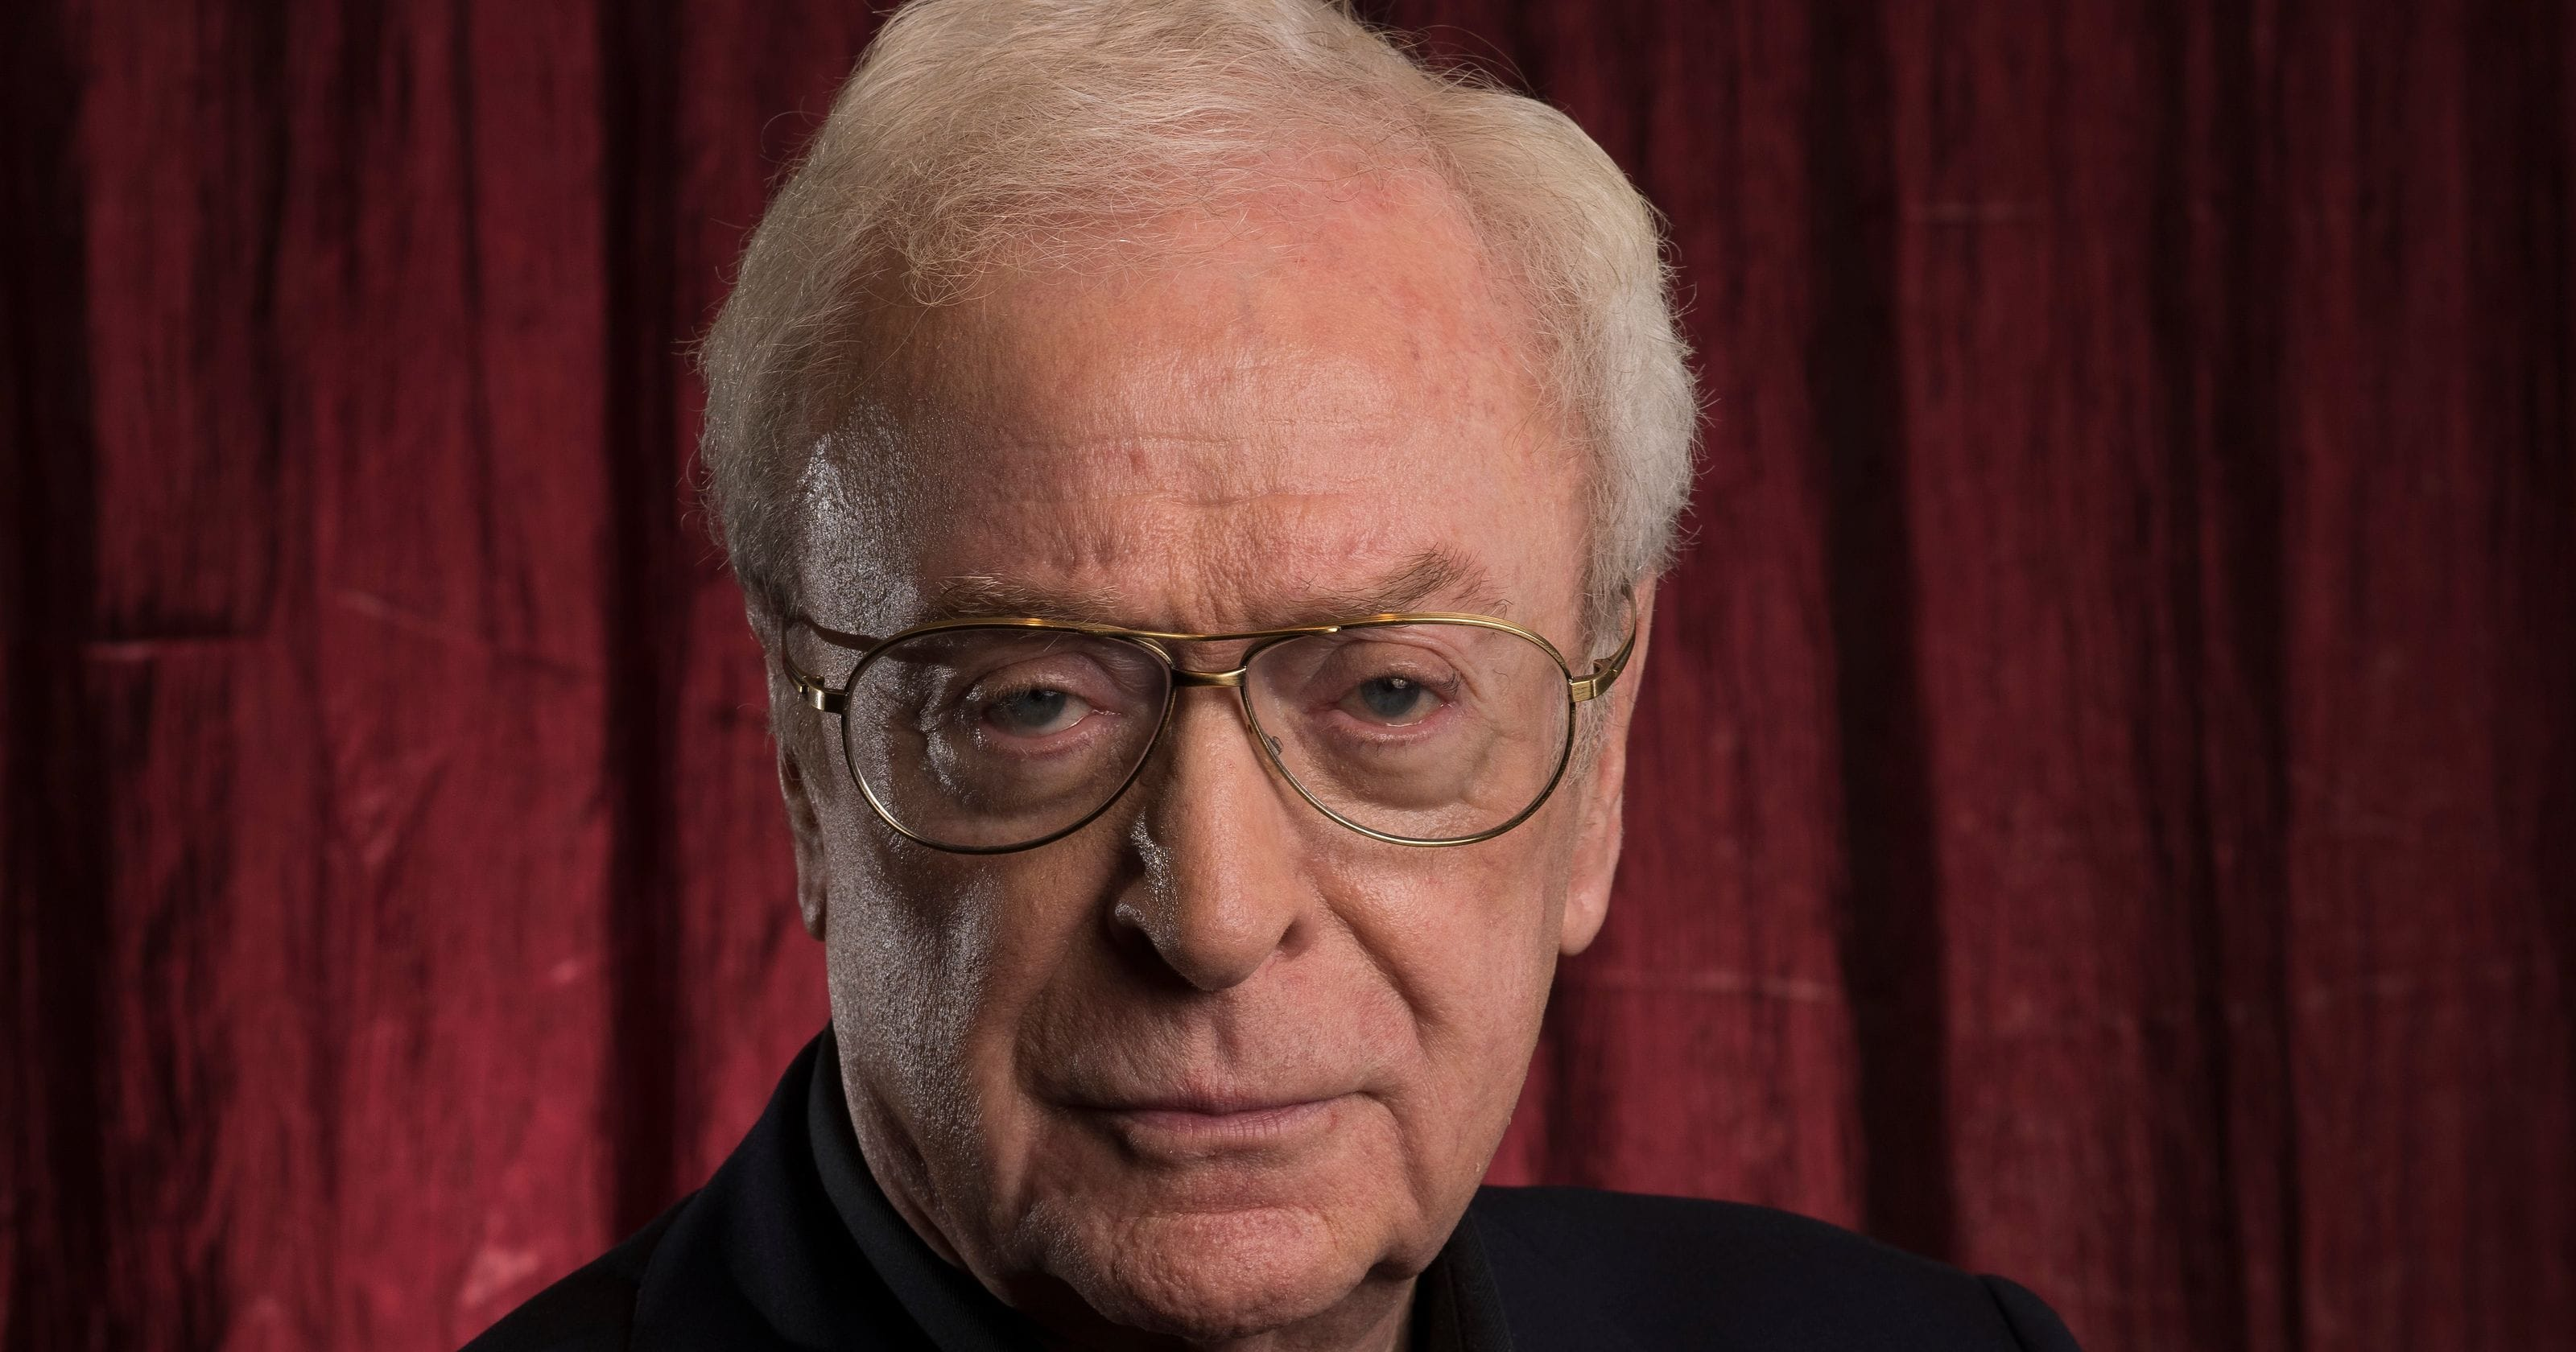 Michael Caine Background